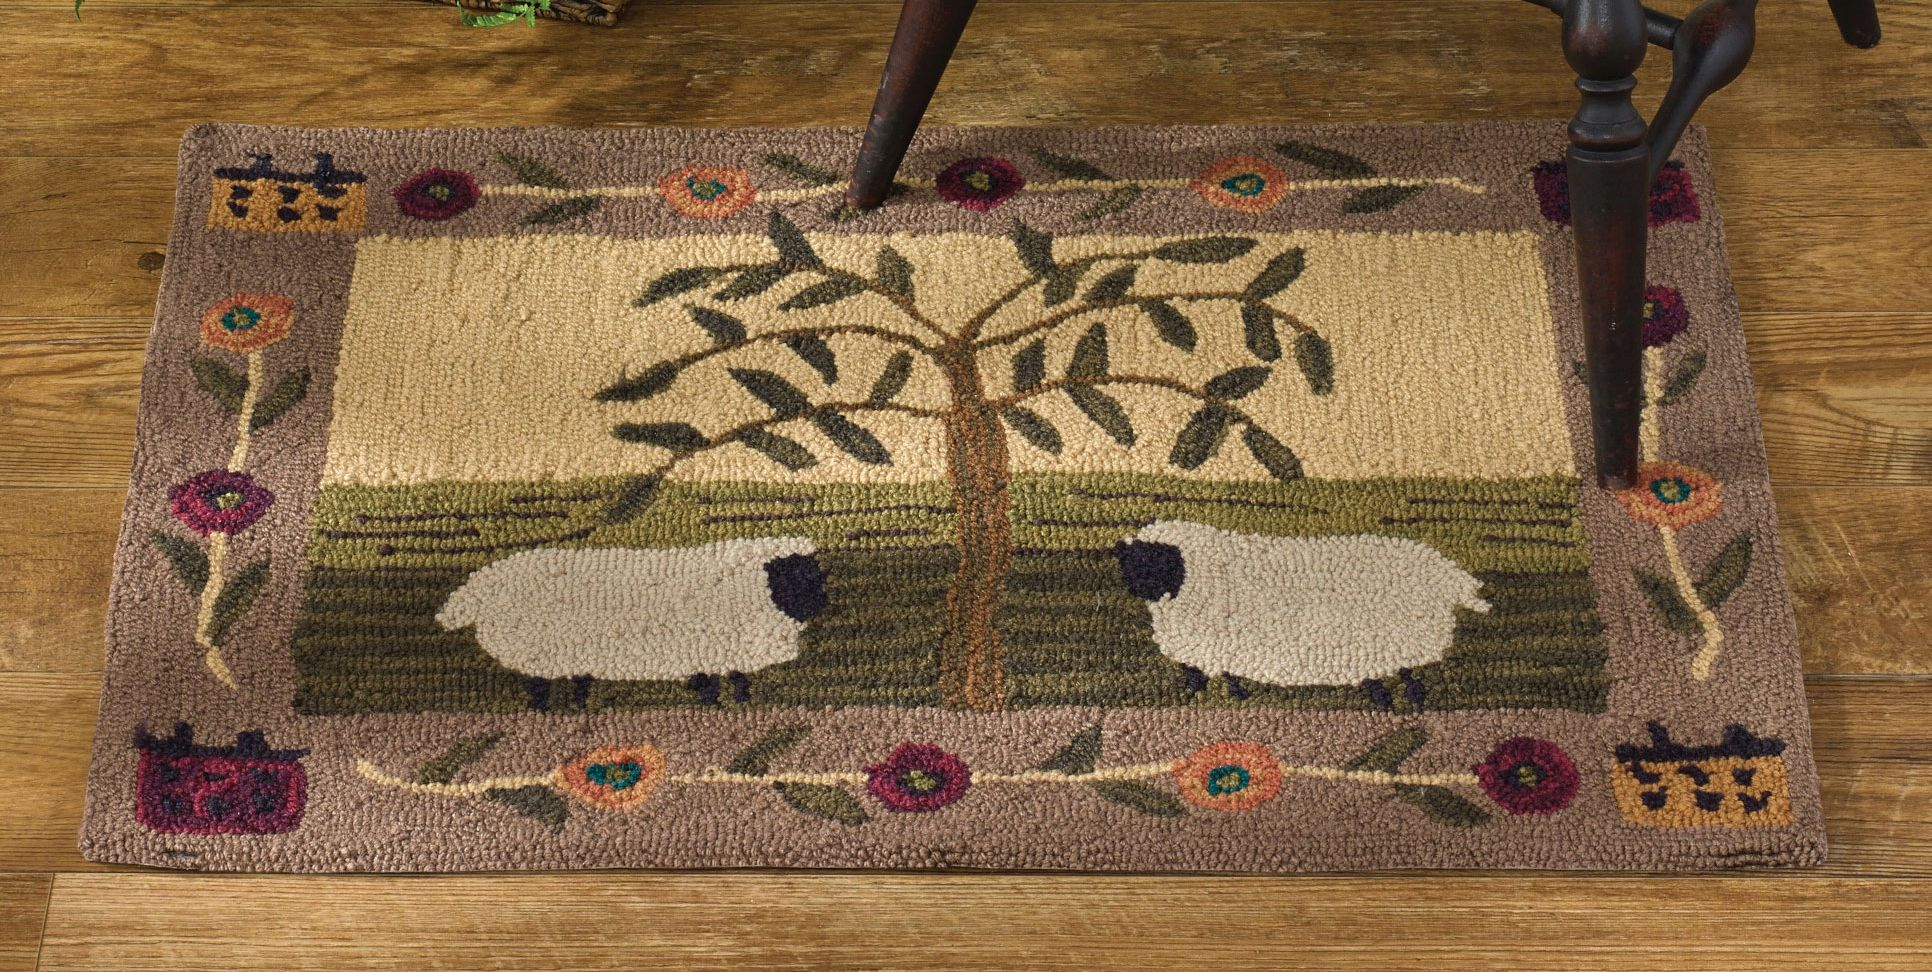 PKD-051-35-Willow-and-Sheep-Hooked-Rug-LRG